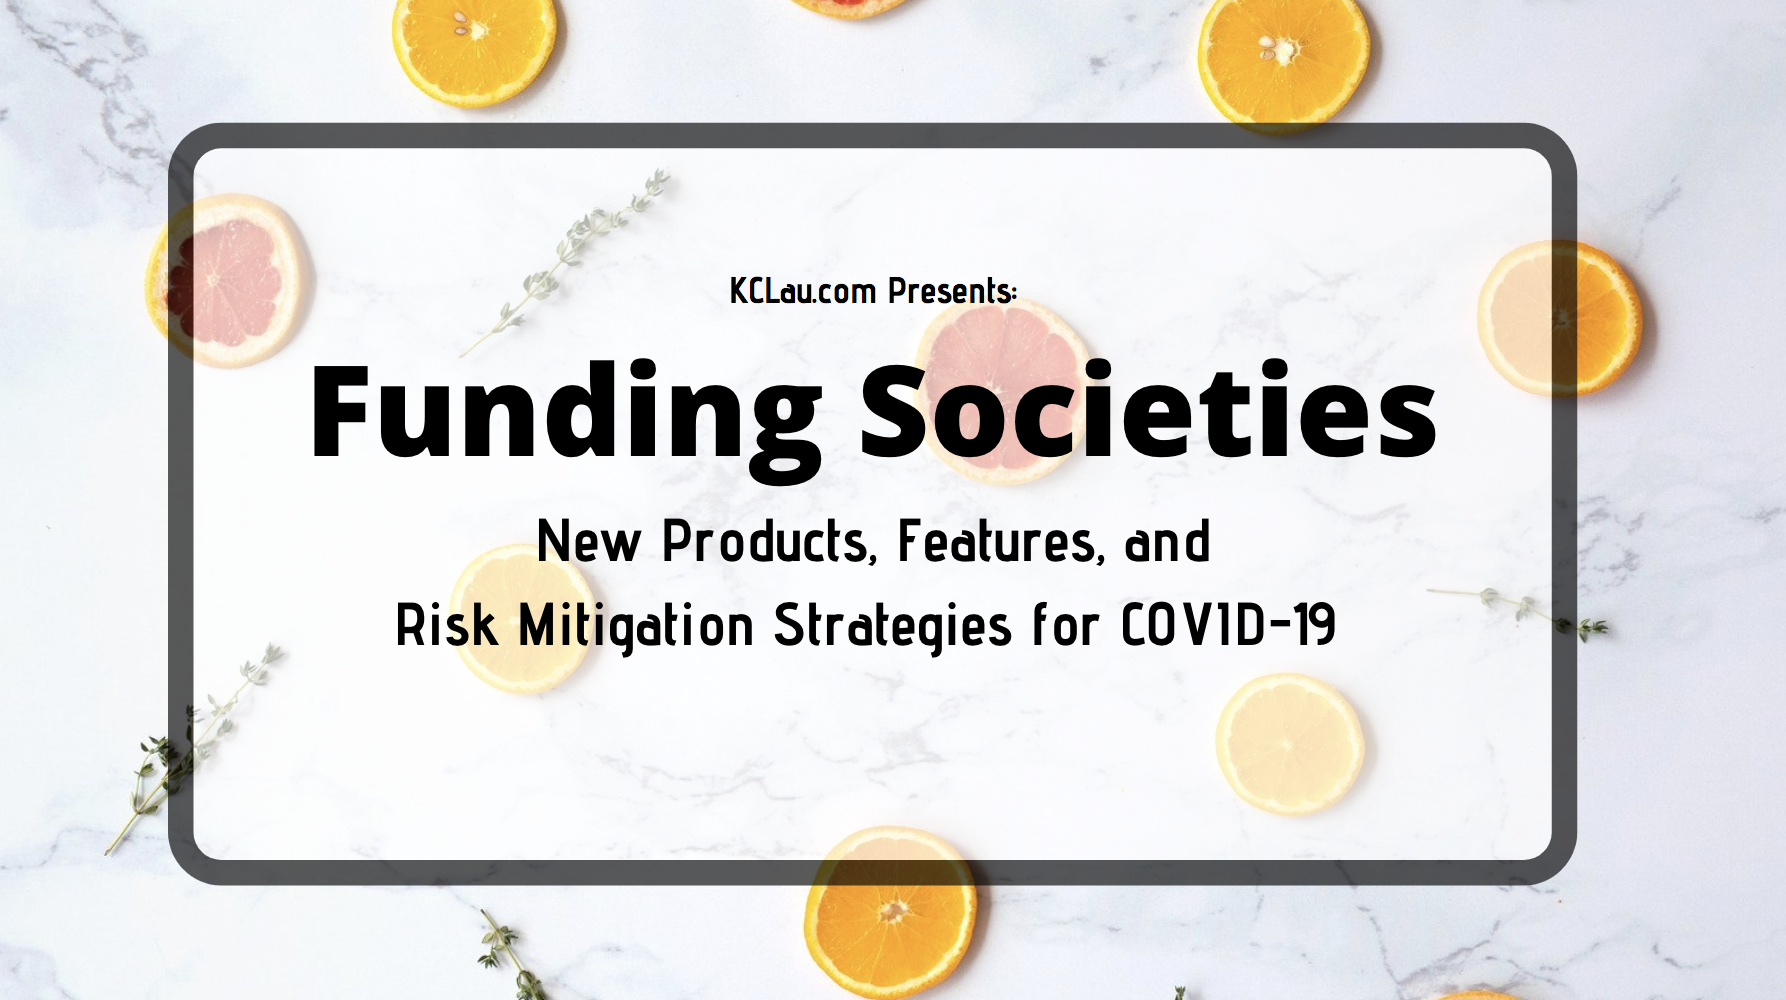 Funding Societies' New Products, Features and Risk Mitigation for COVID-19